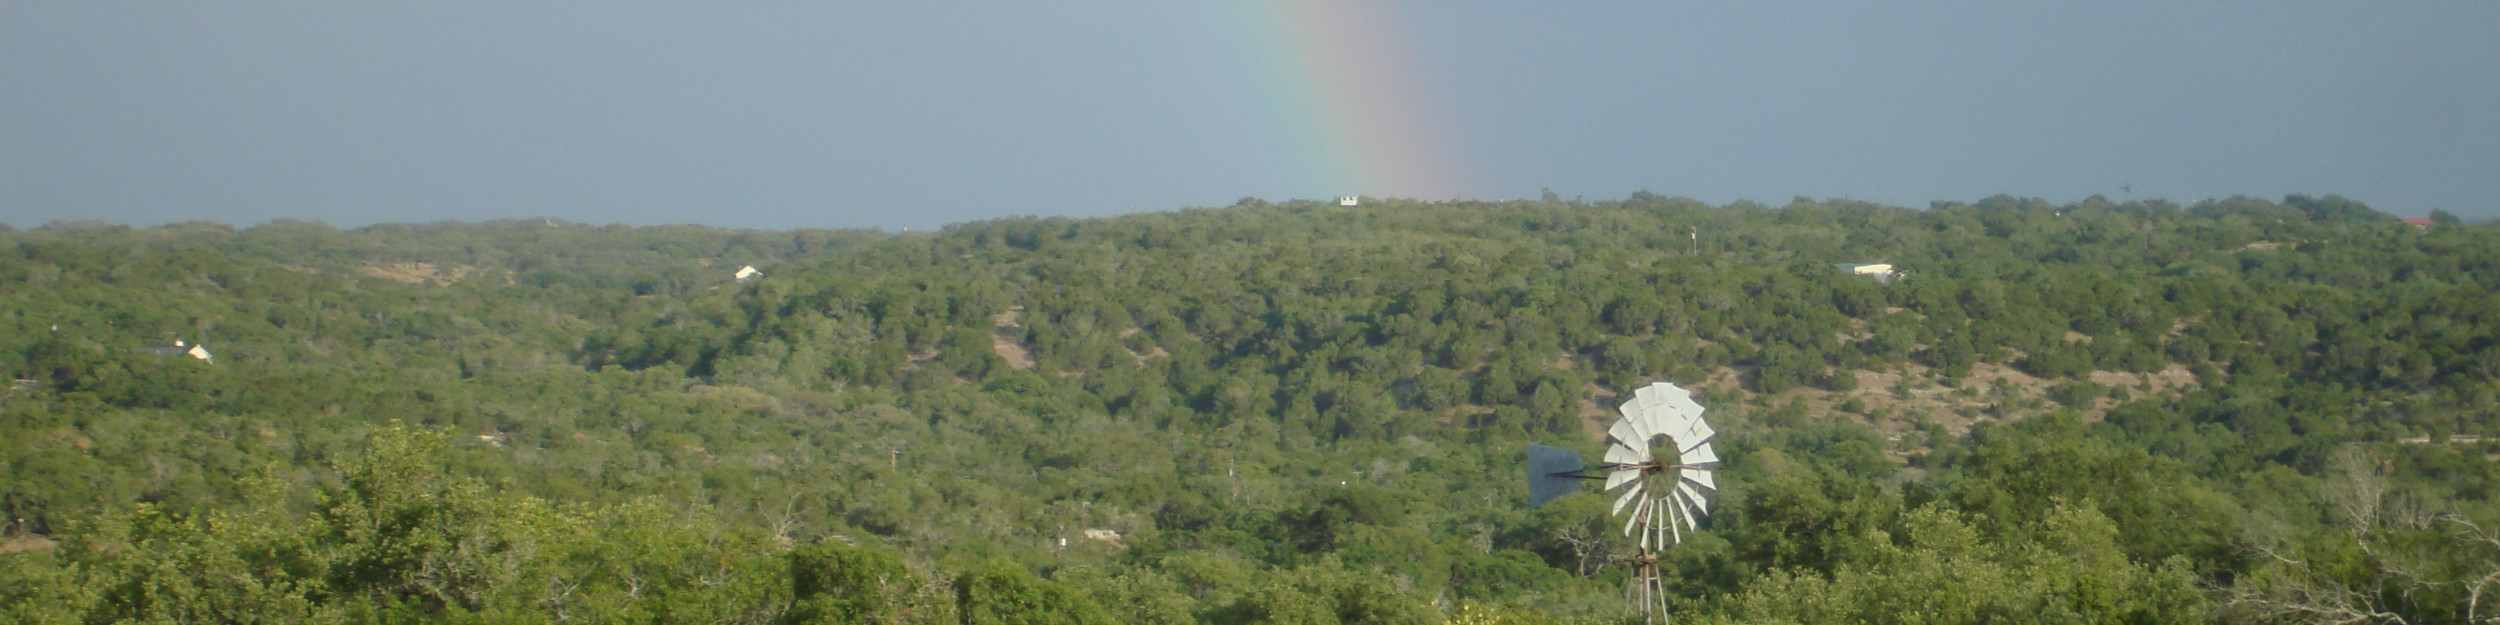 Hill Country Ranches